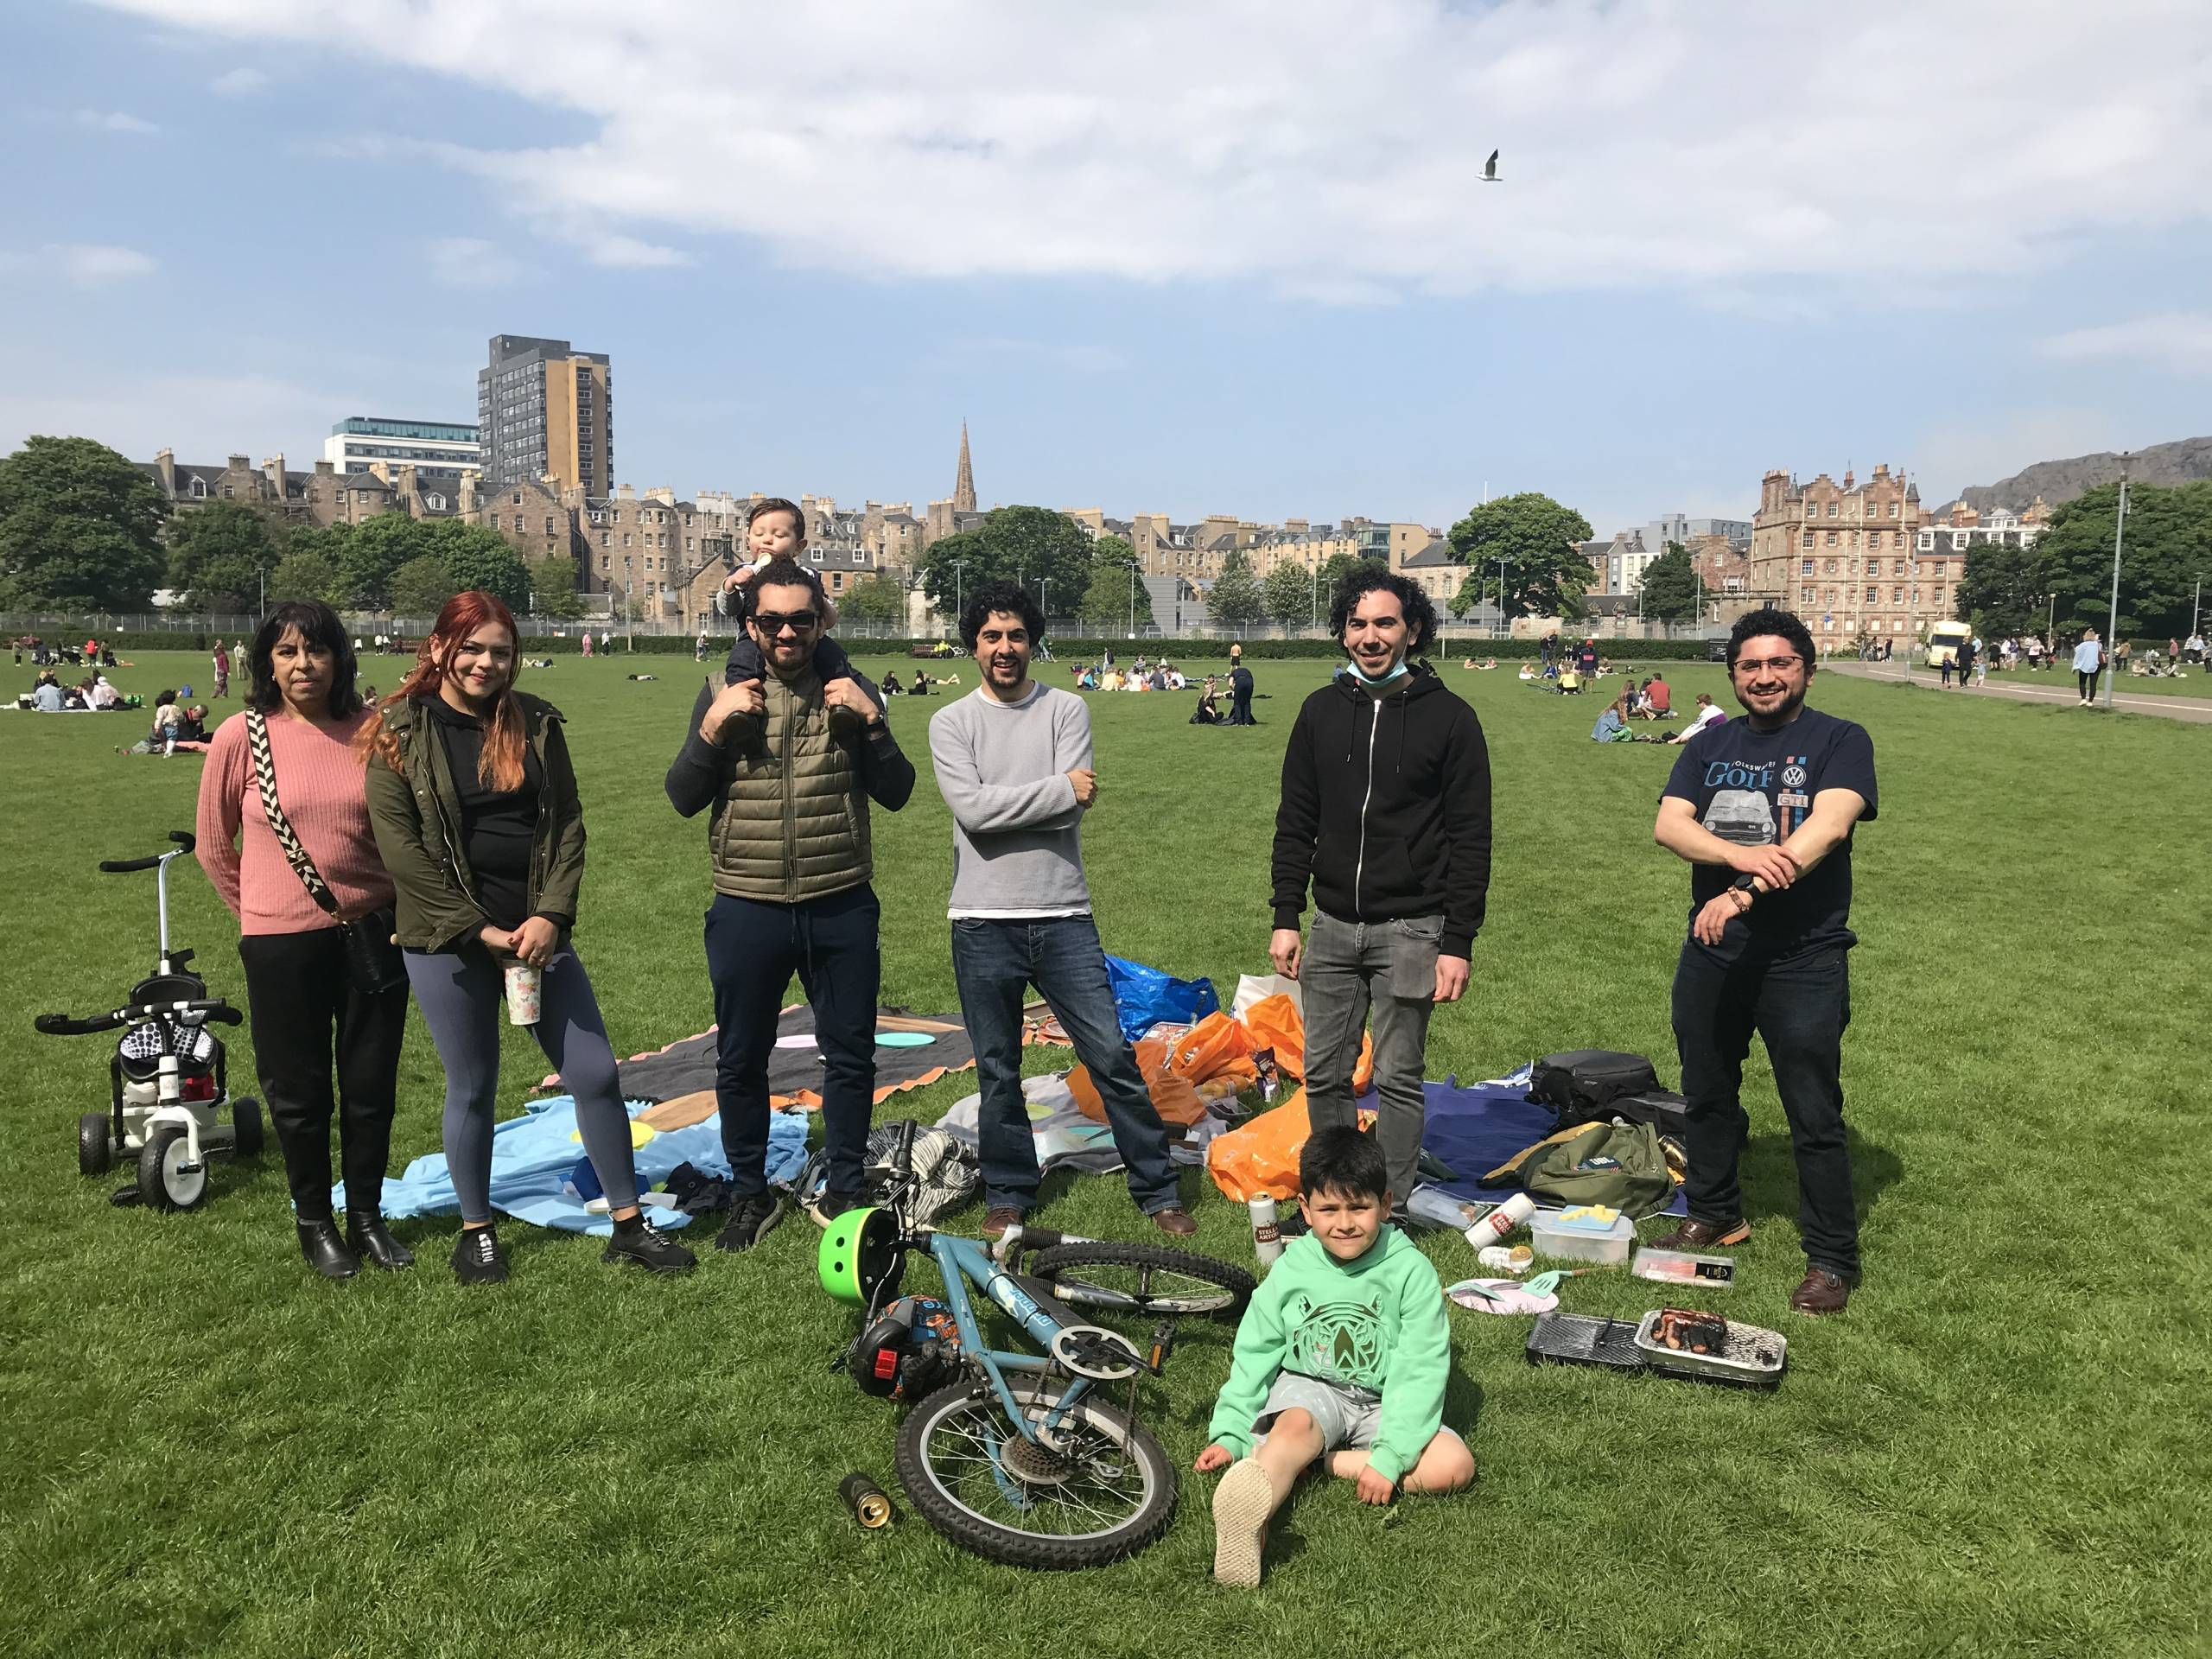 BBQ in the Meadows!